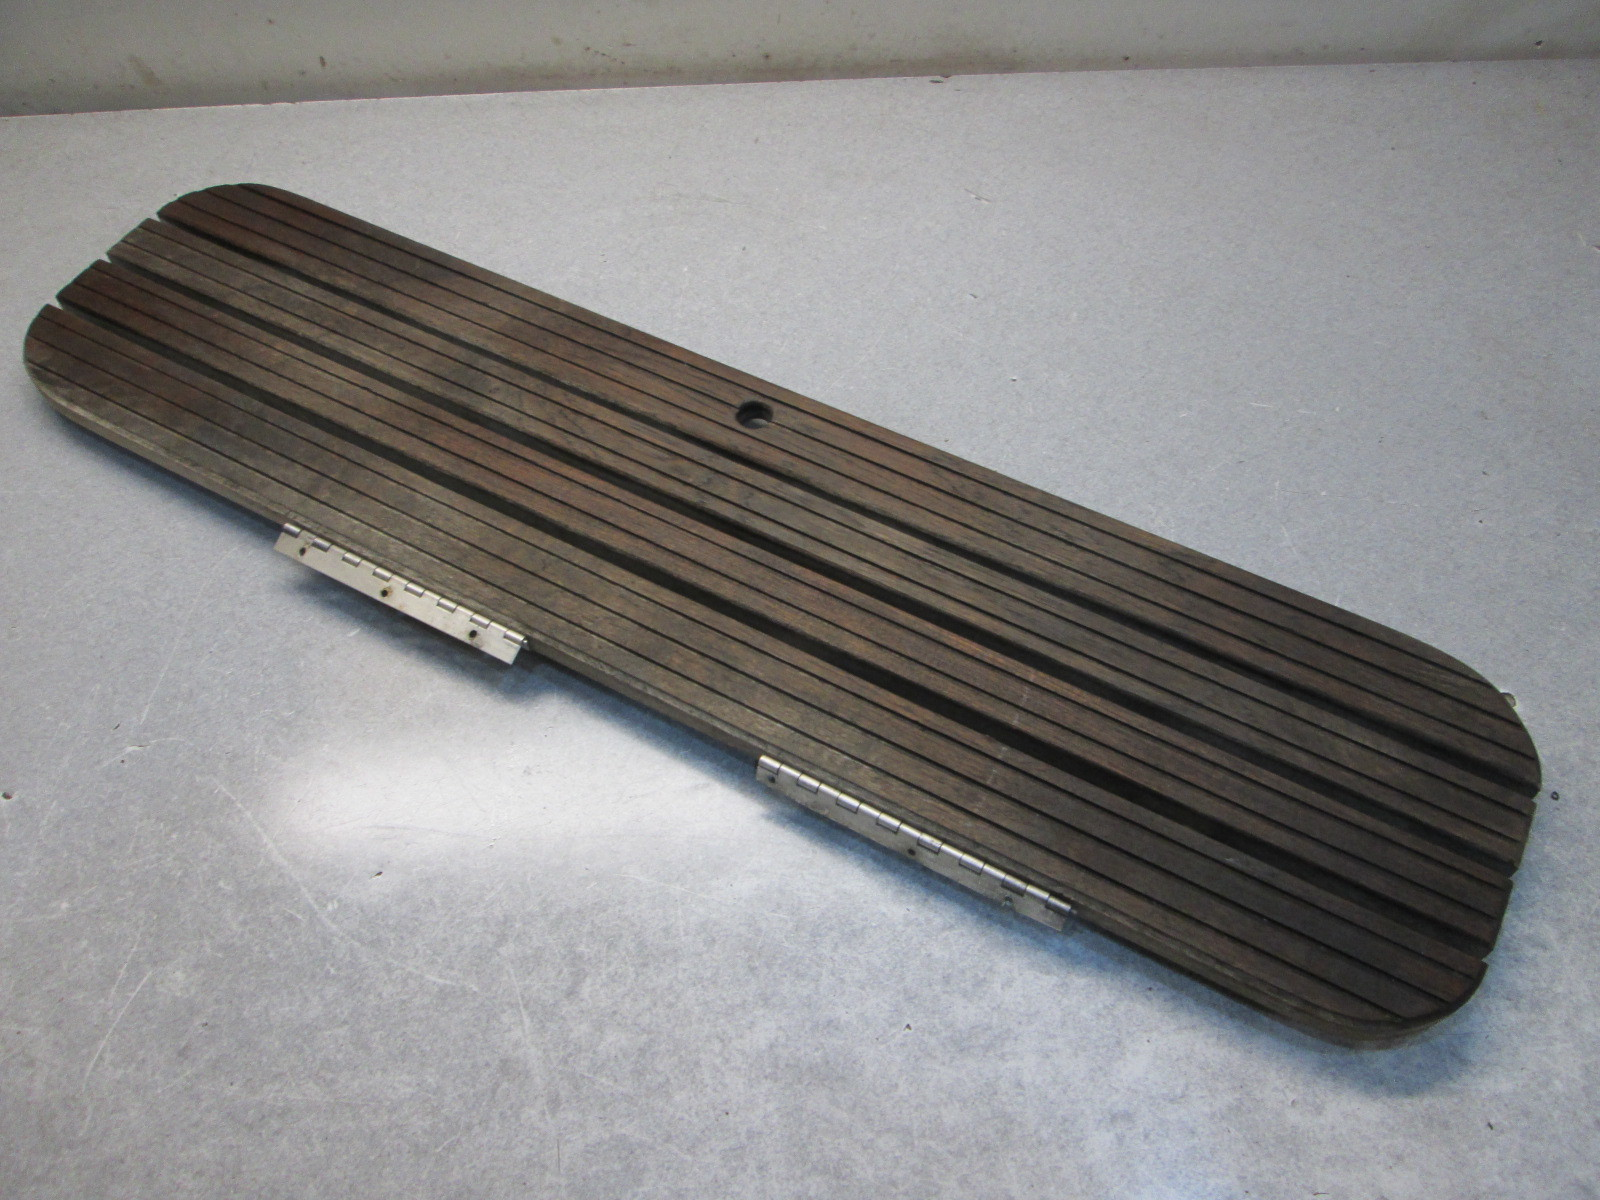 details about teak wood boat floor deck hatch cover 41 3 4 x 10